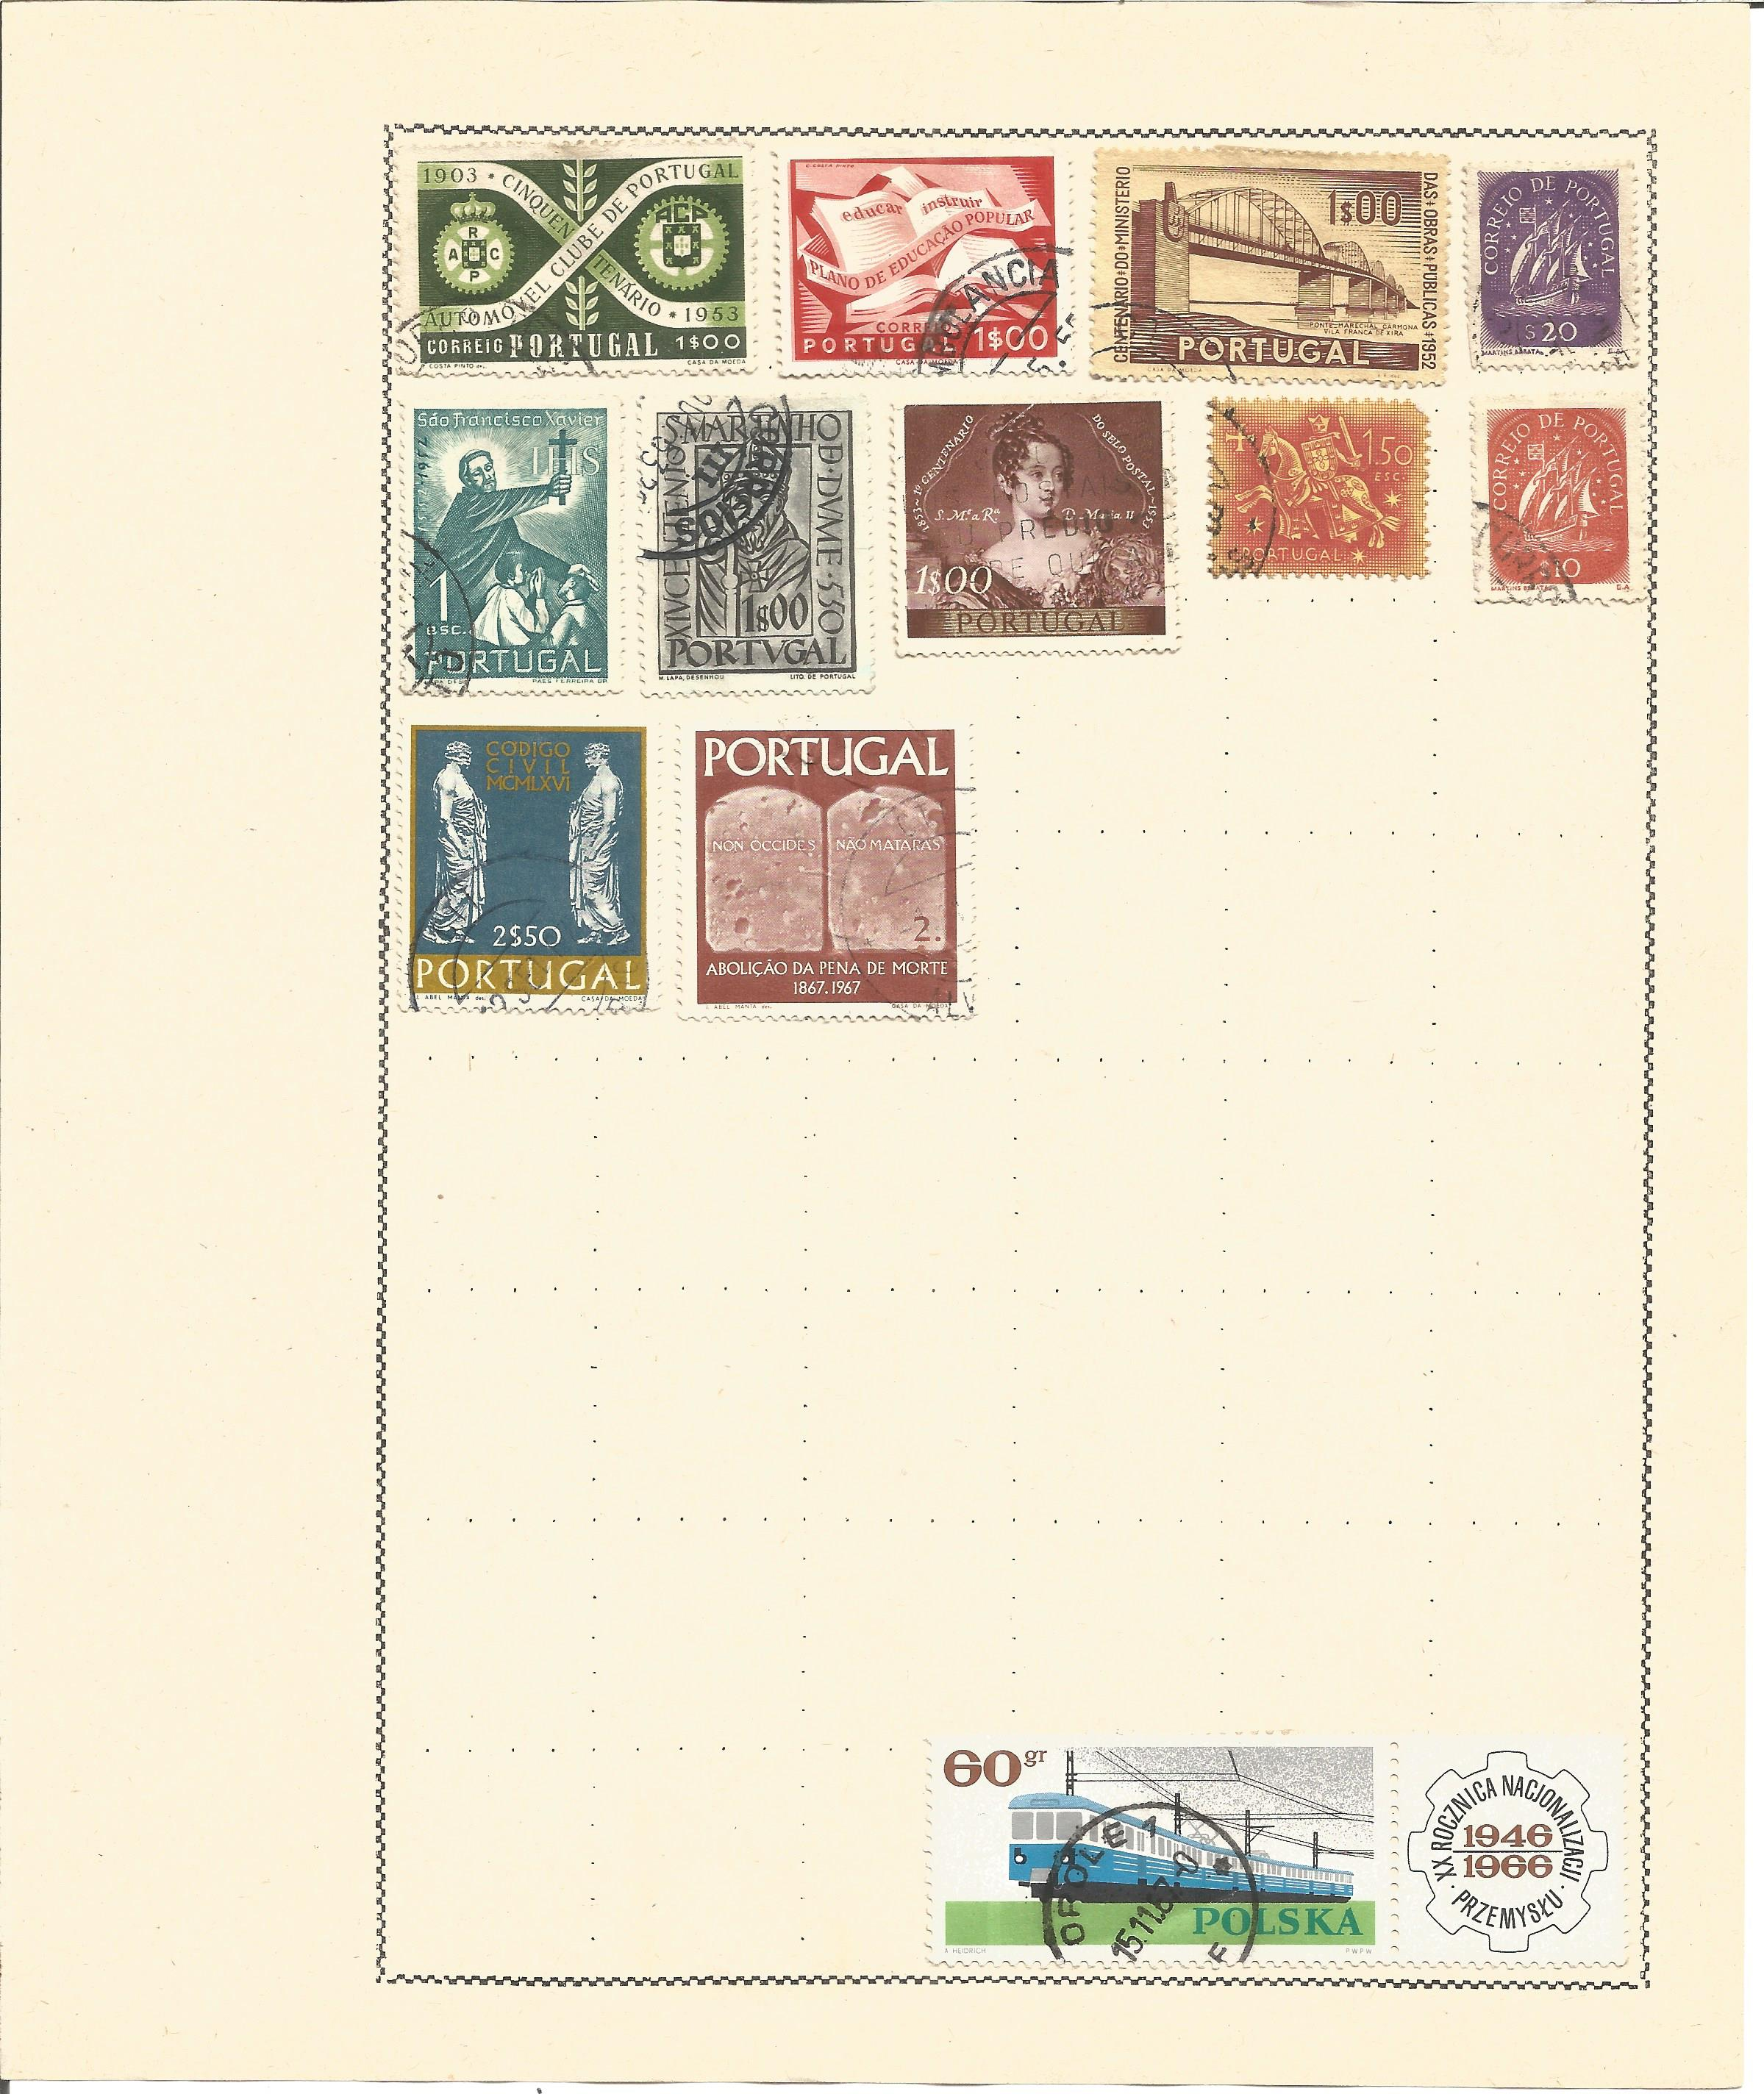 European stamp collection 6 loose album pages countries include Portugal and the Portuguese - Image 2 of 3